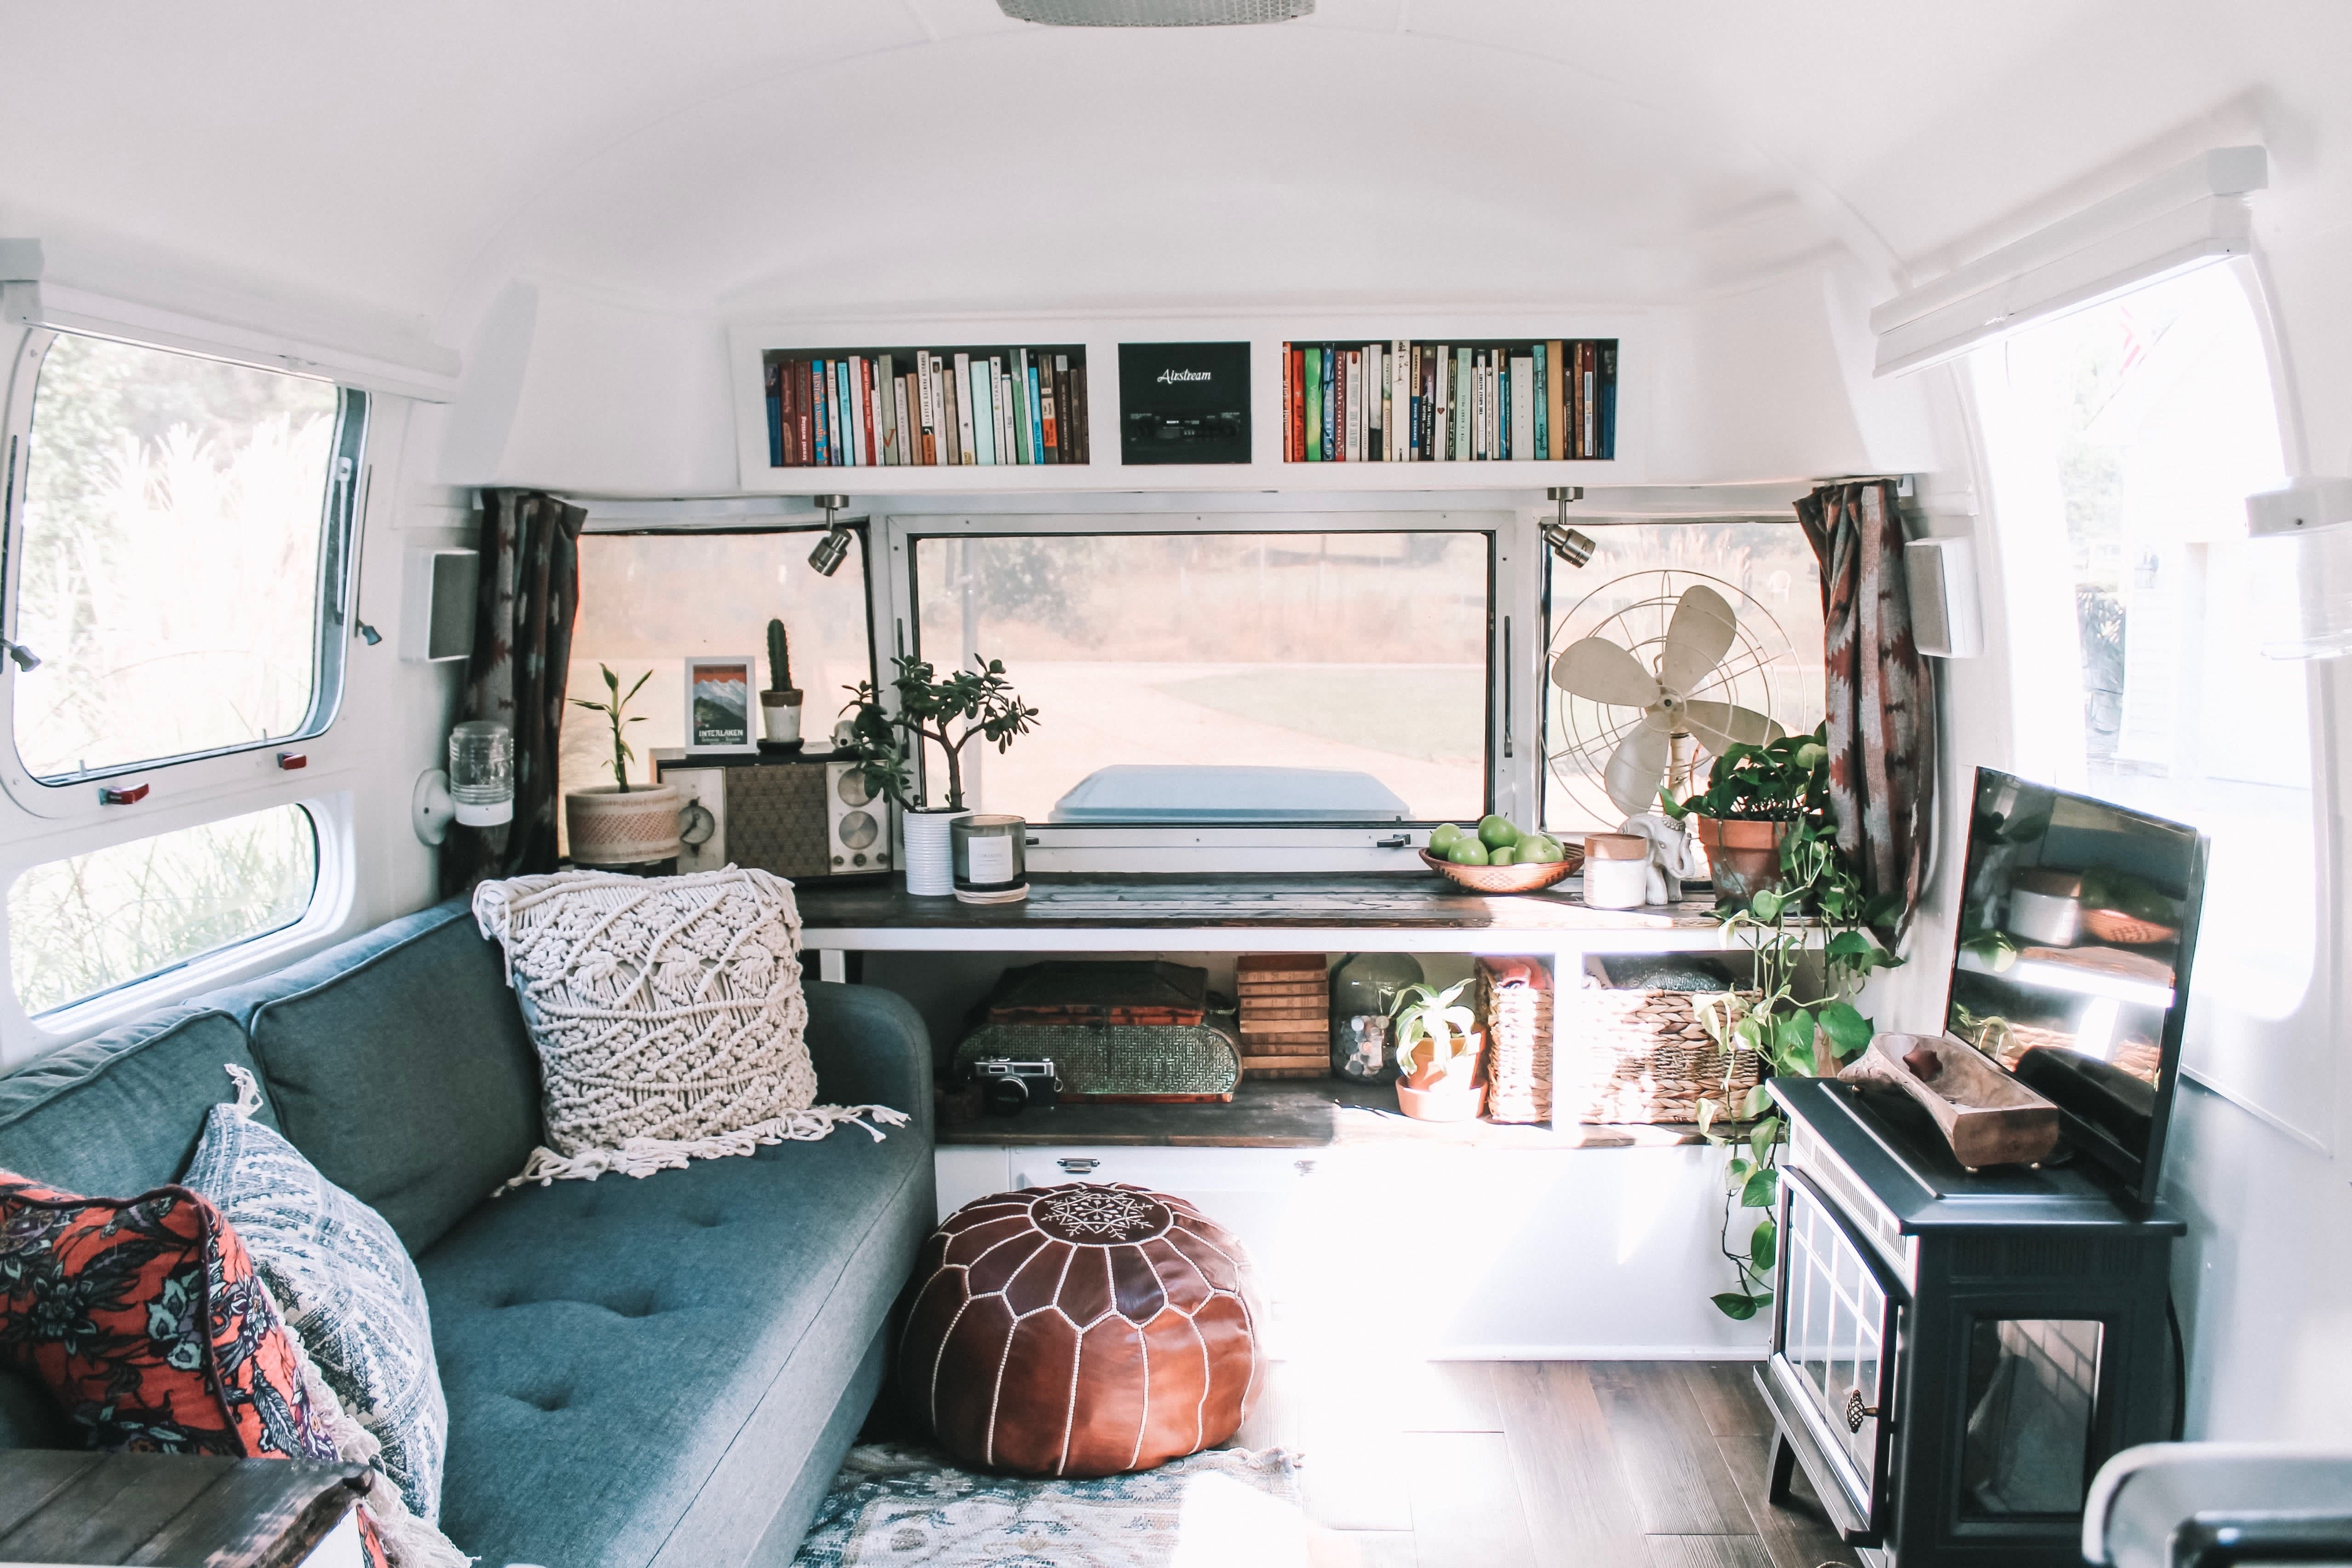 Stylish RV Vans That Will Make You Want to Join the Van Life